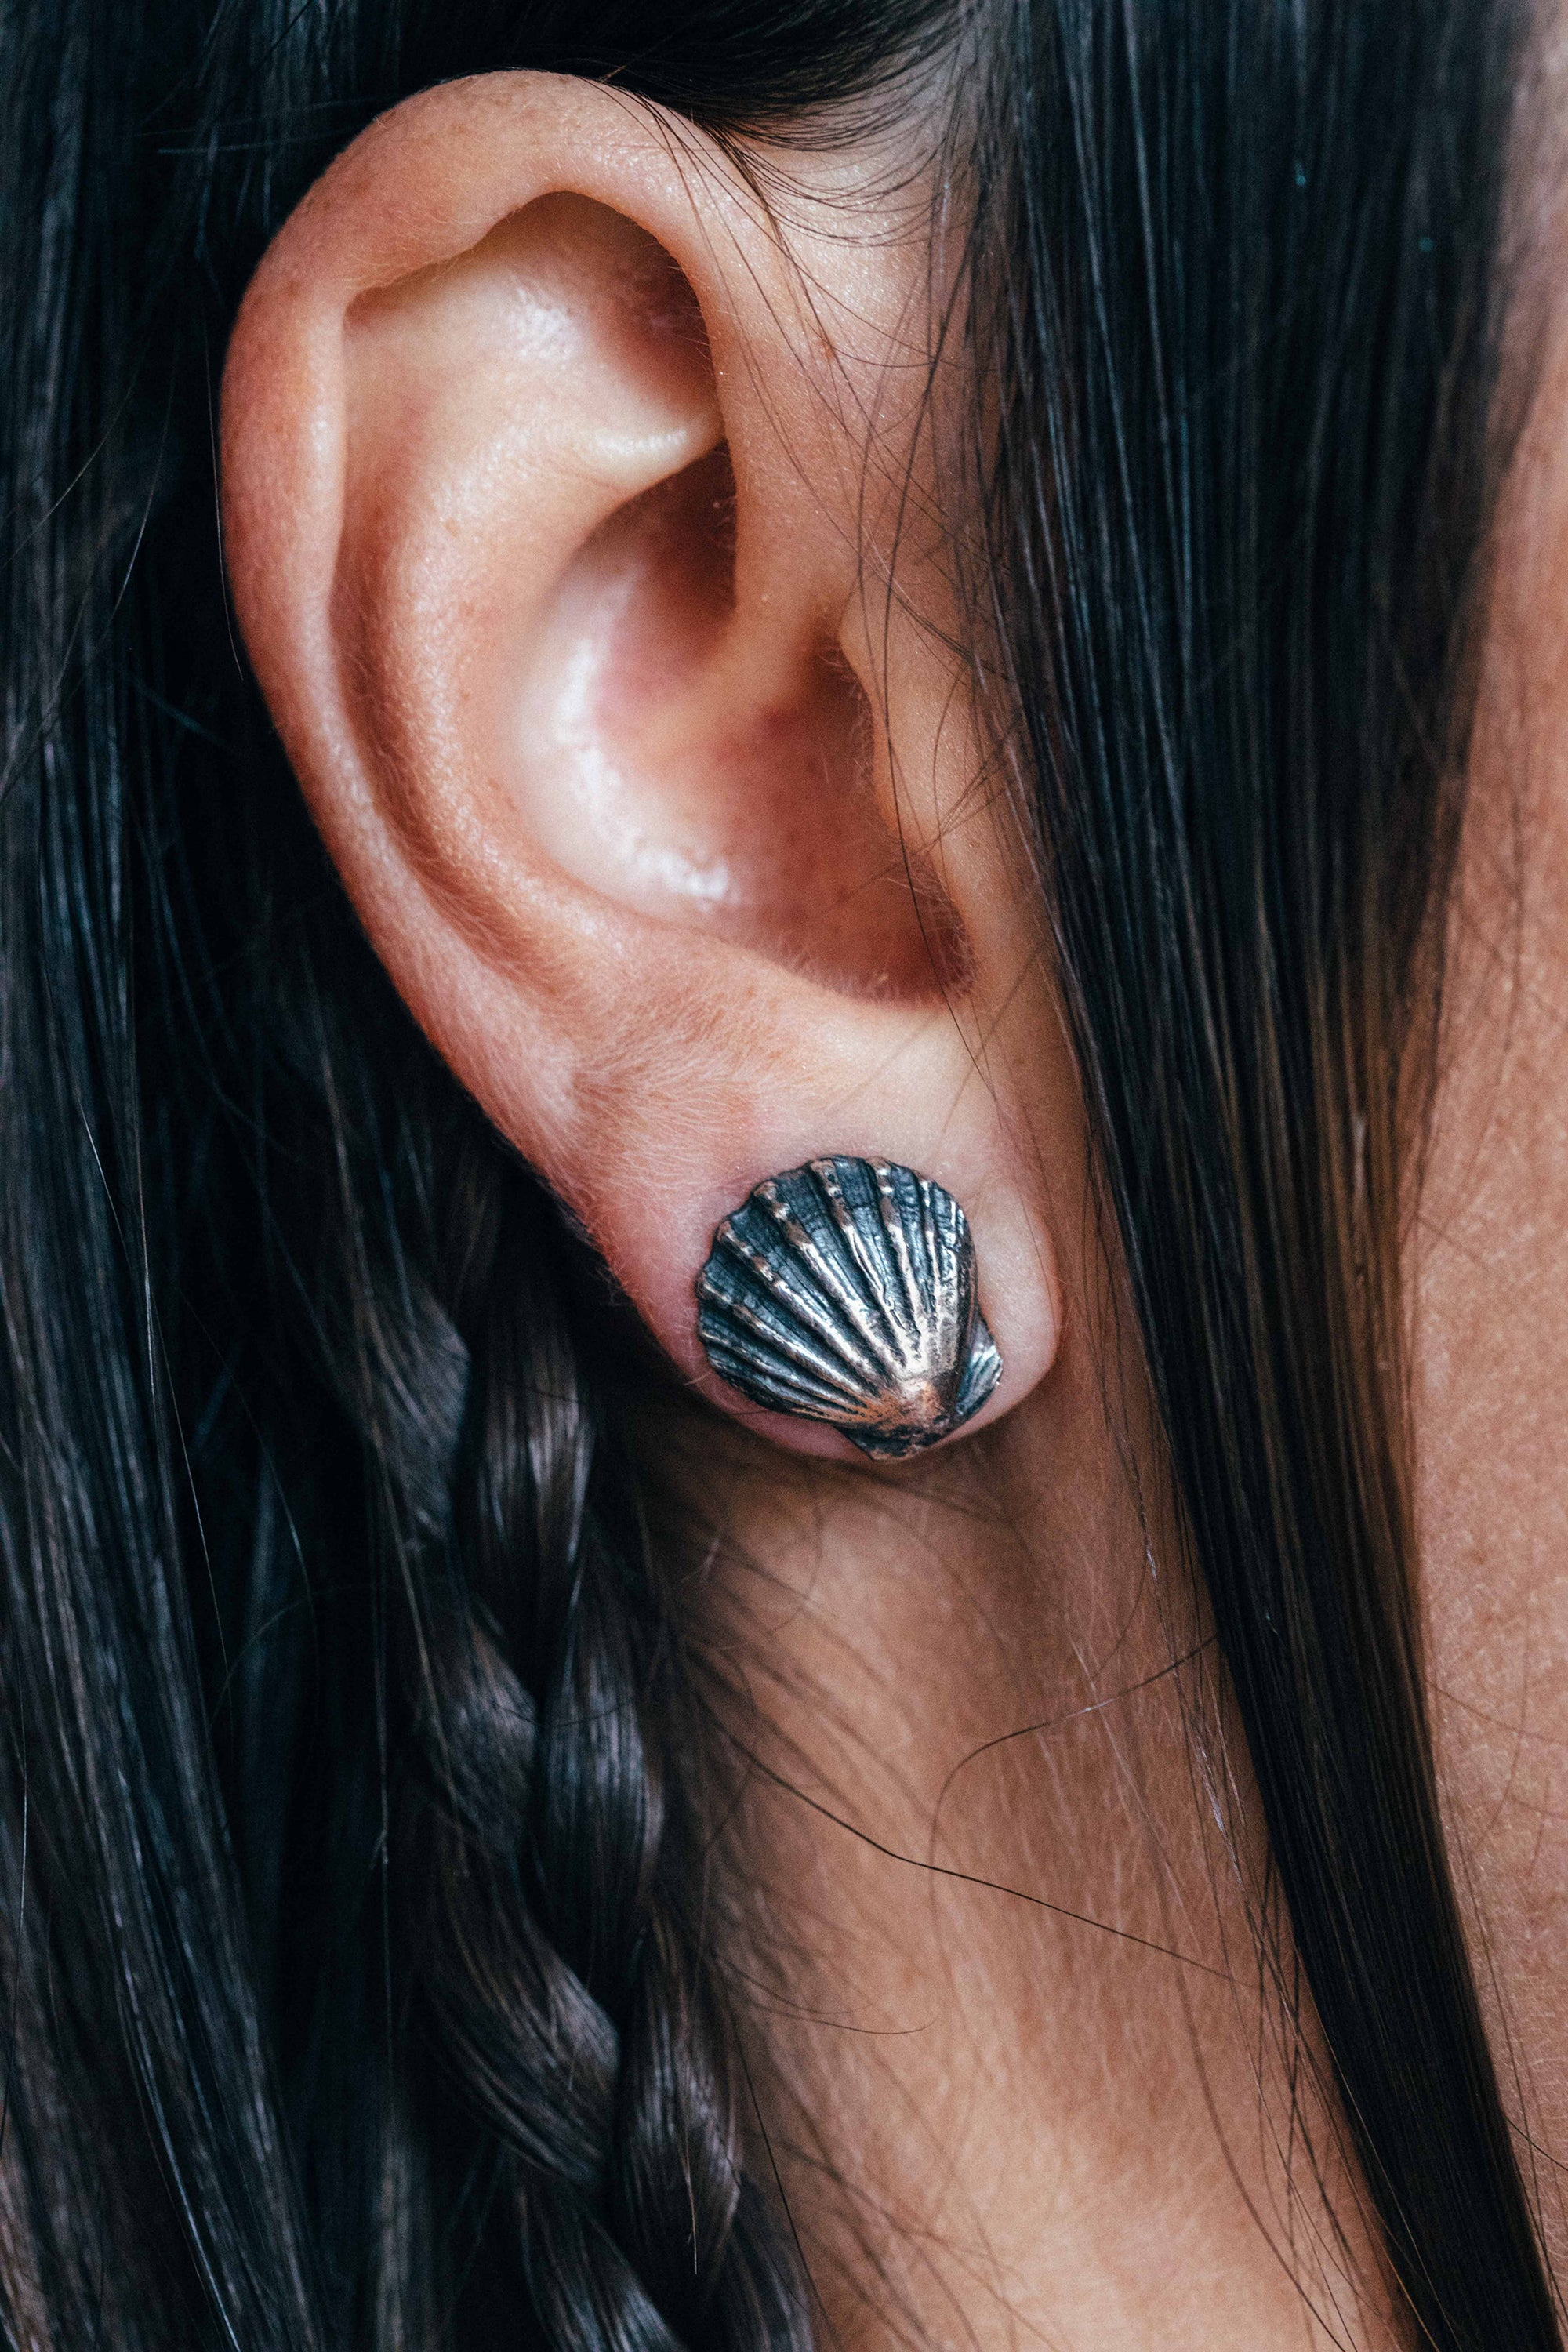 Clam shell earrings ~ (blackened silver)